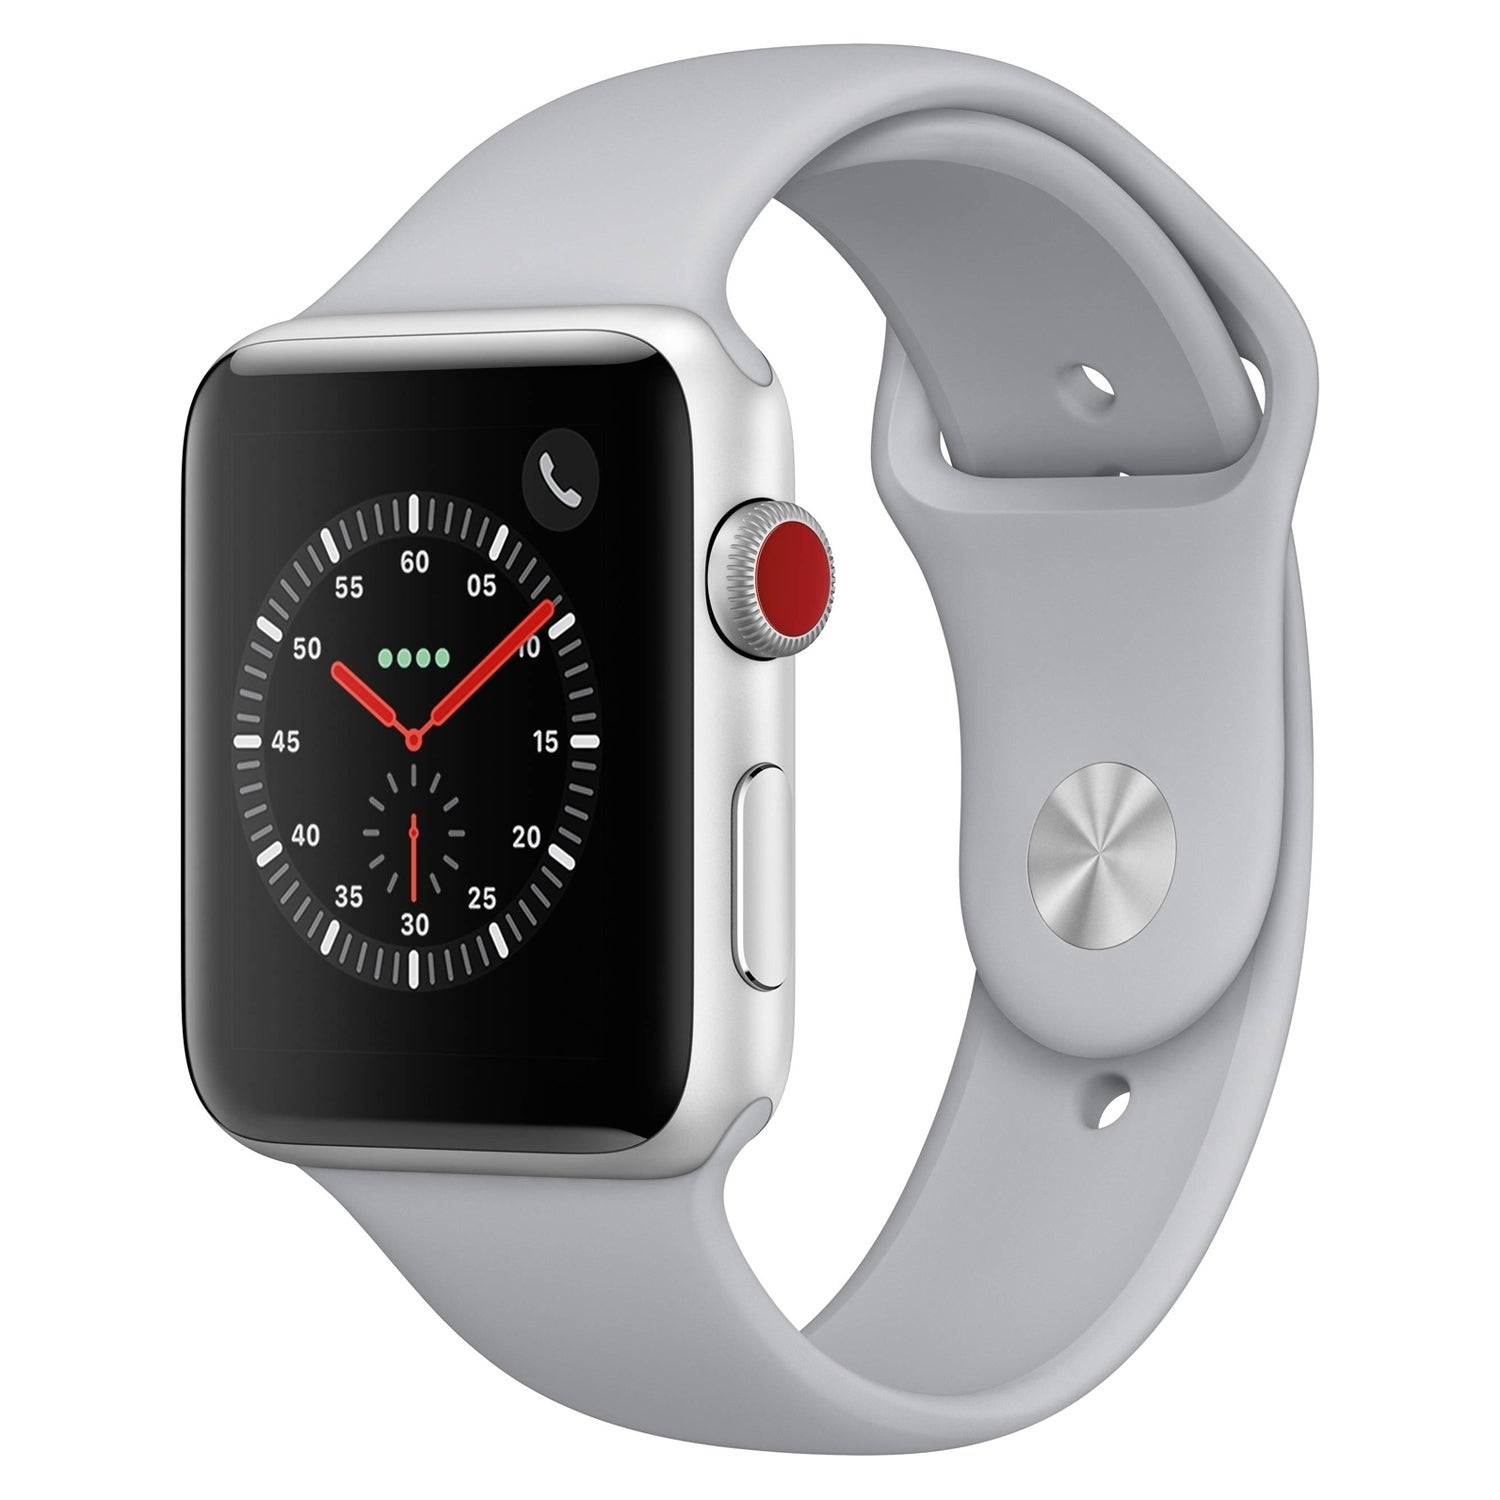 Refurbished Apple Smart Watch S3 GPS + Cellular Stainless Steel 42m Stainless Steel W/Silver-Fog Band